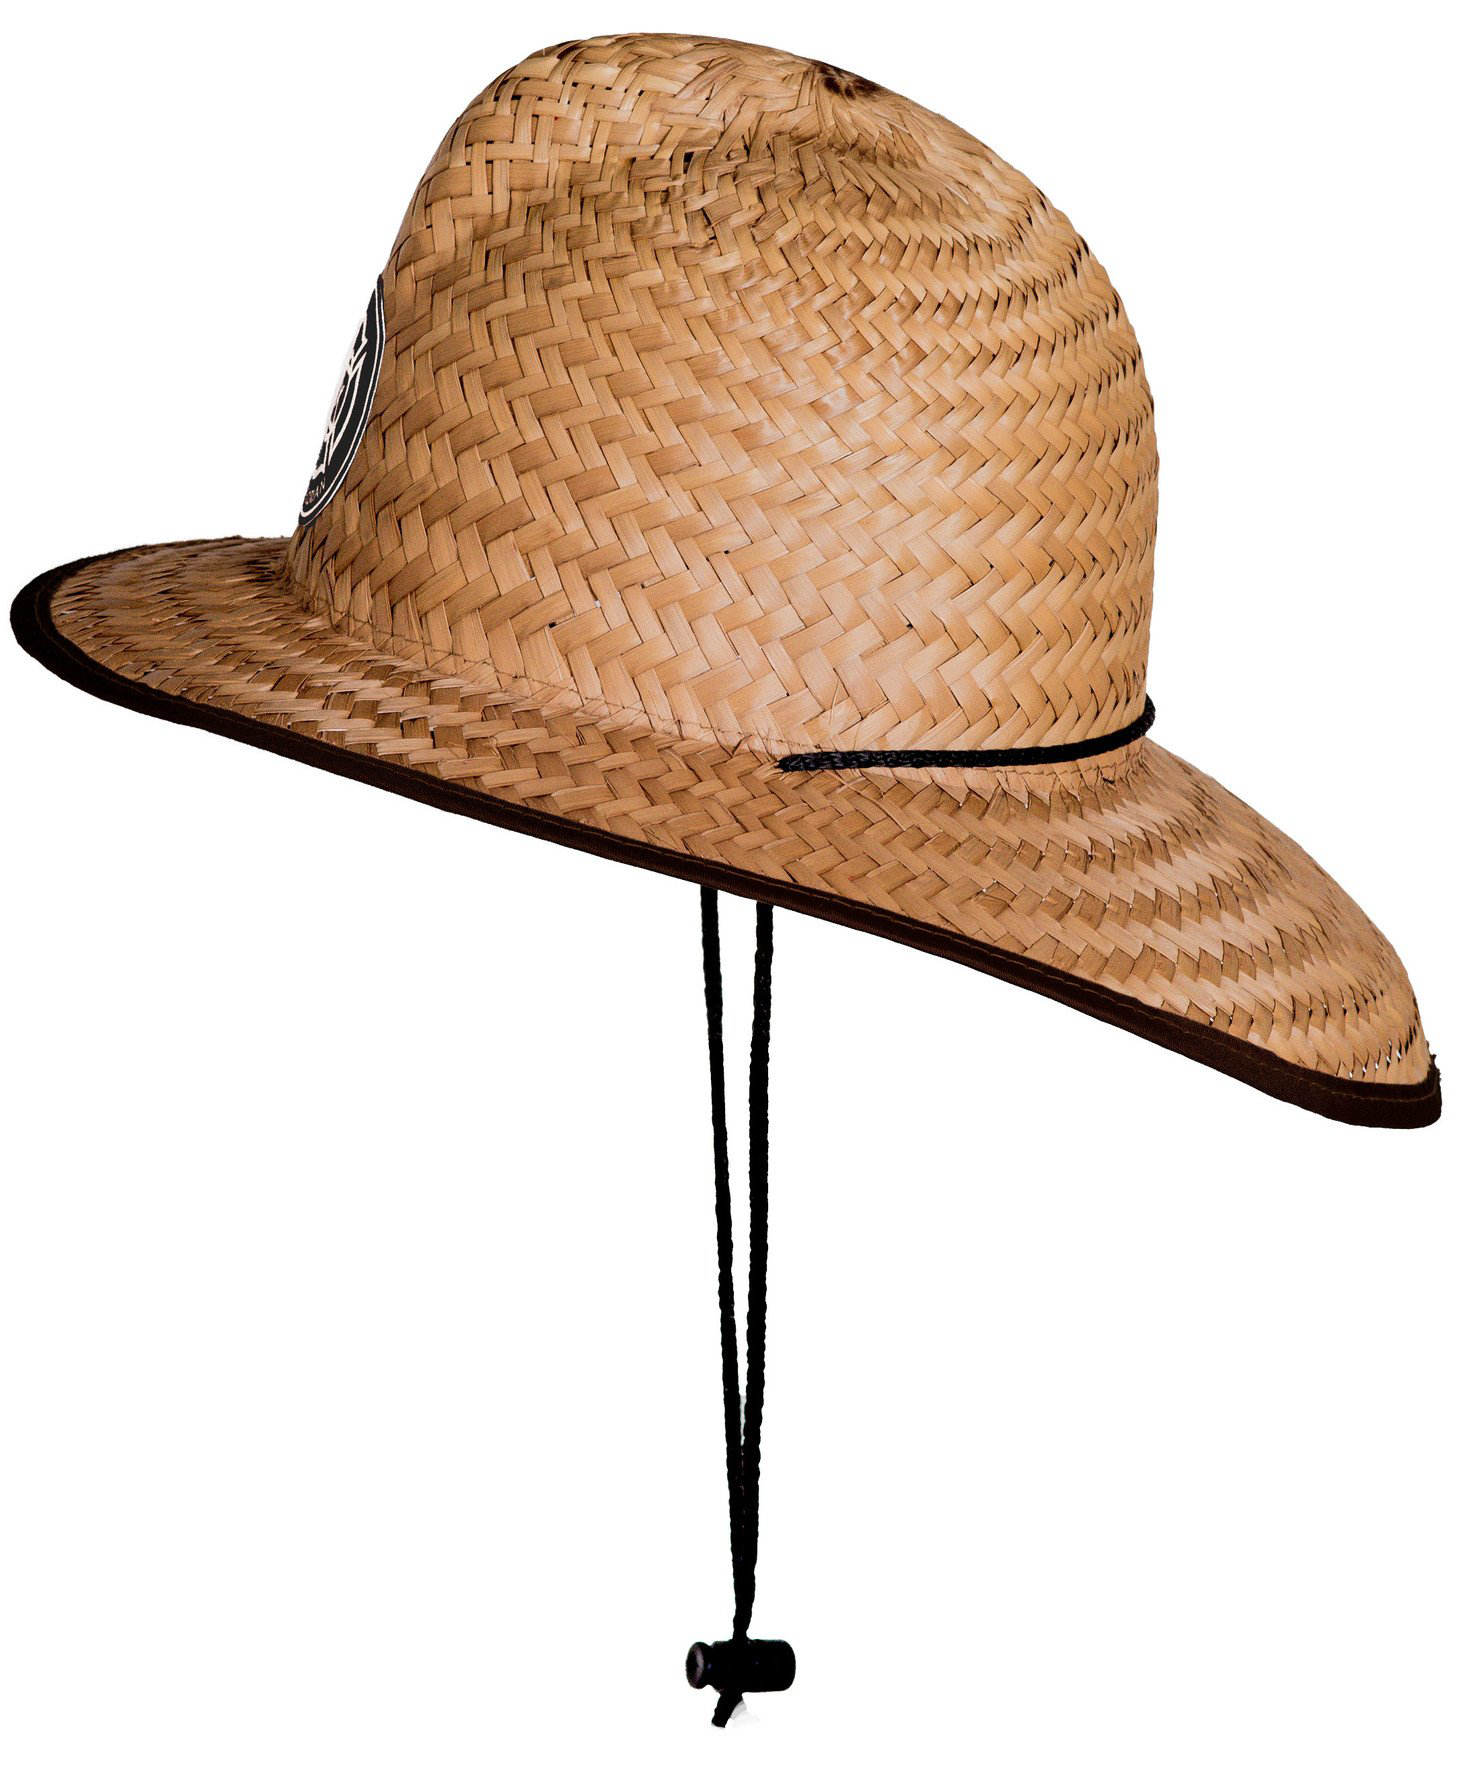 Saint Florian Clothing Straw Firefighter Hat